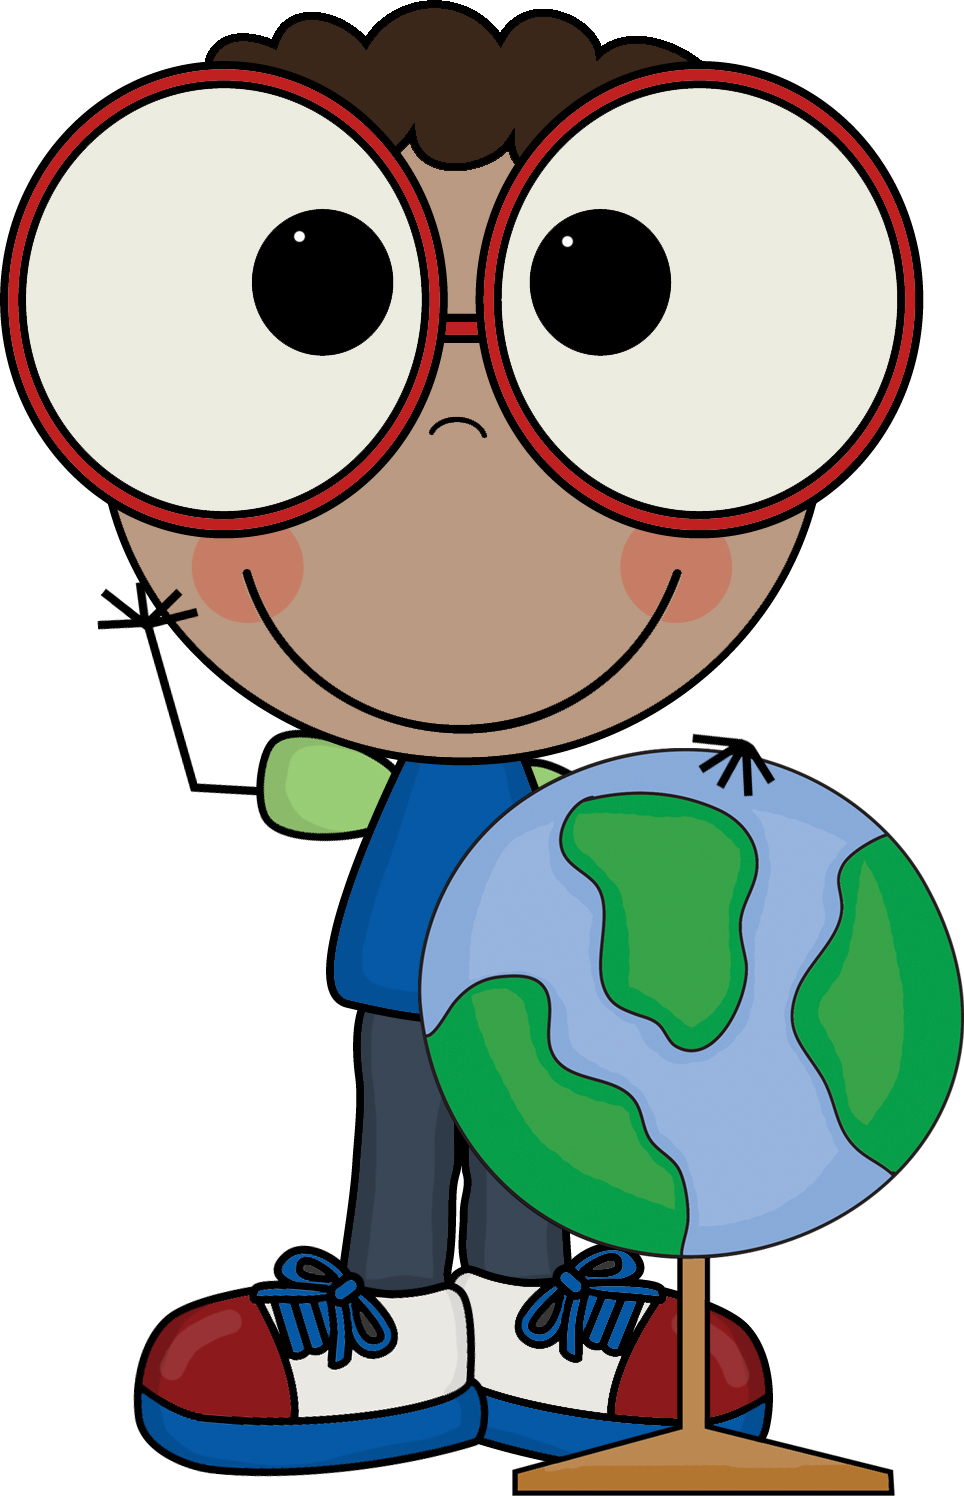 Clip Art Social Studies Clip Art social studies black and white clipart kid smarty pants clip art boy with globe studies